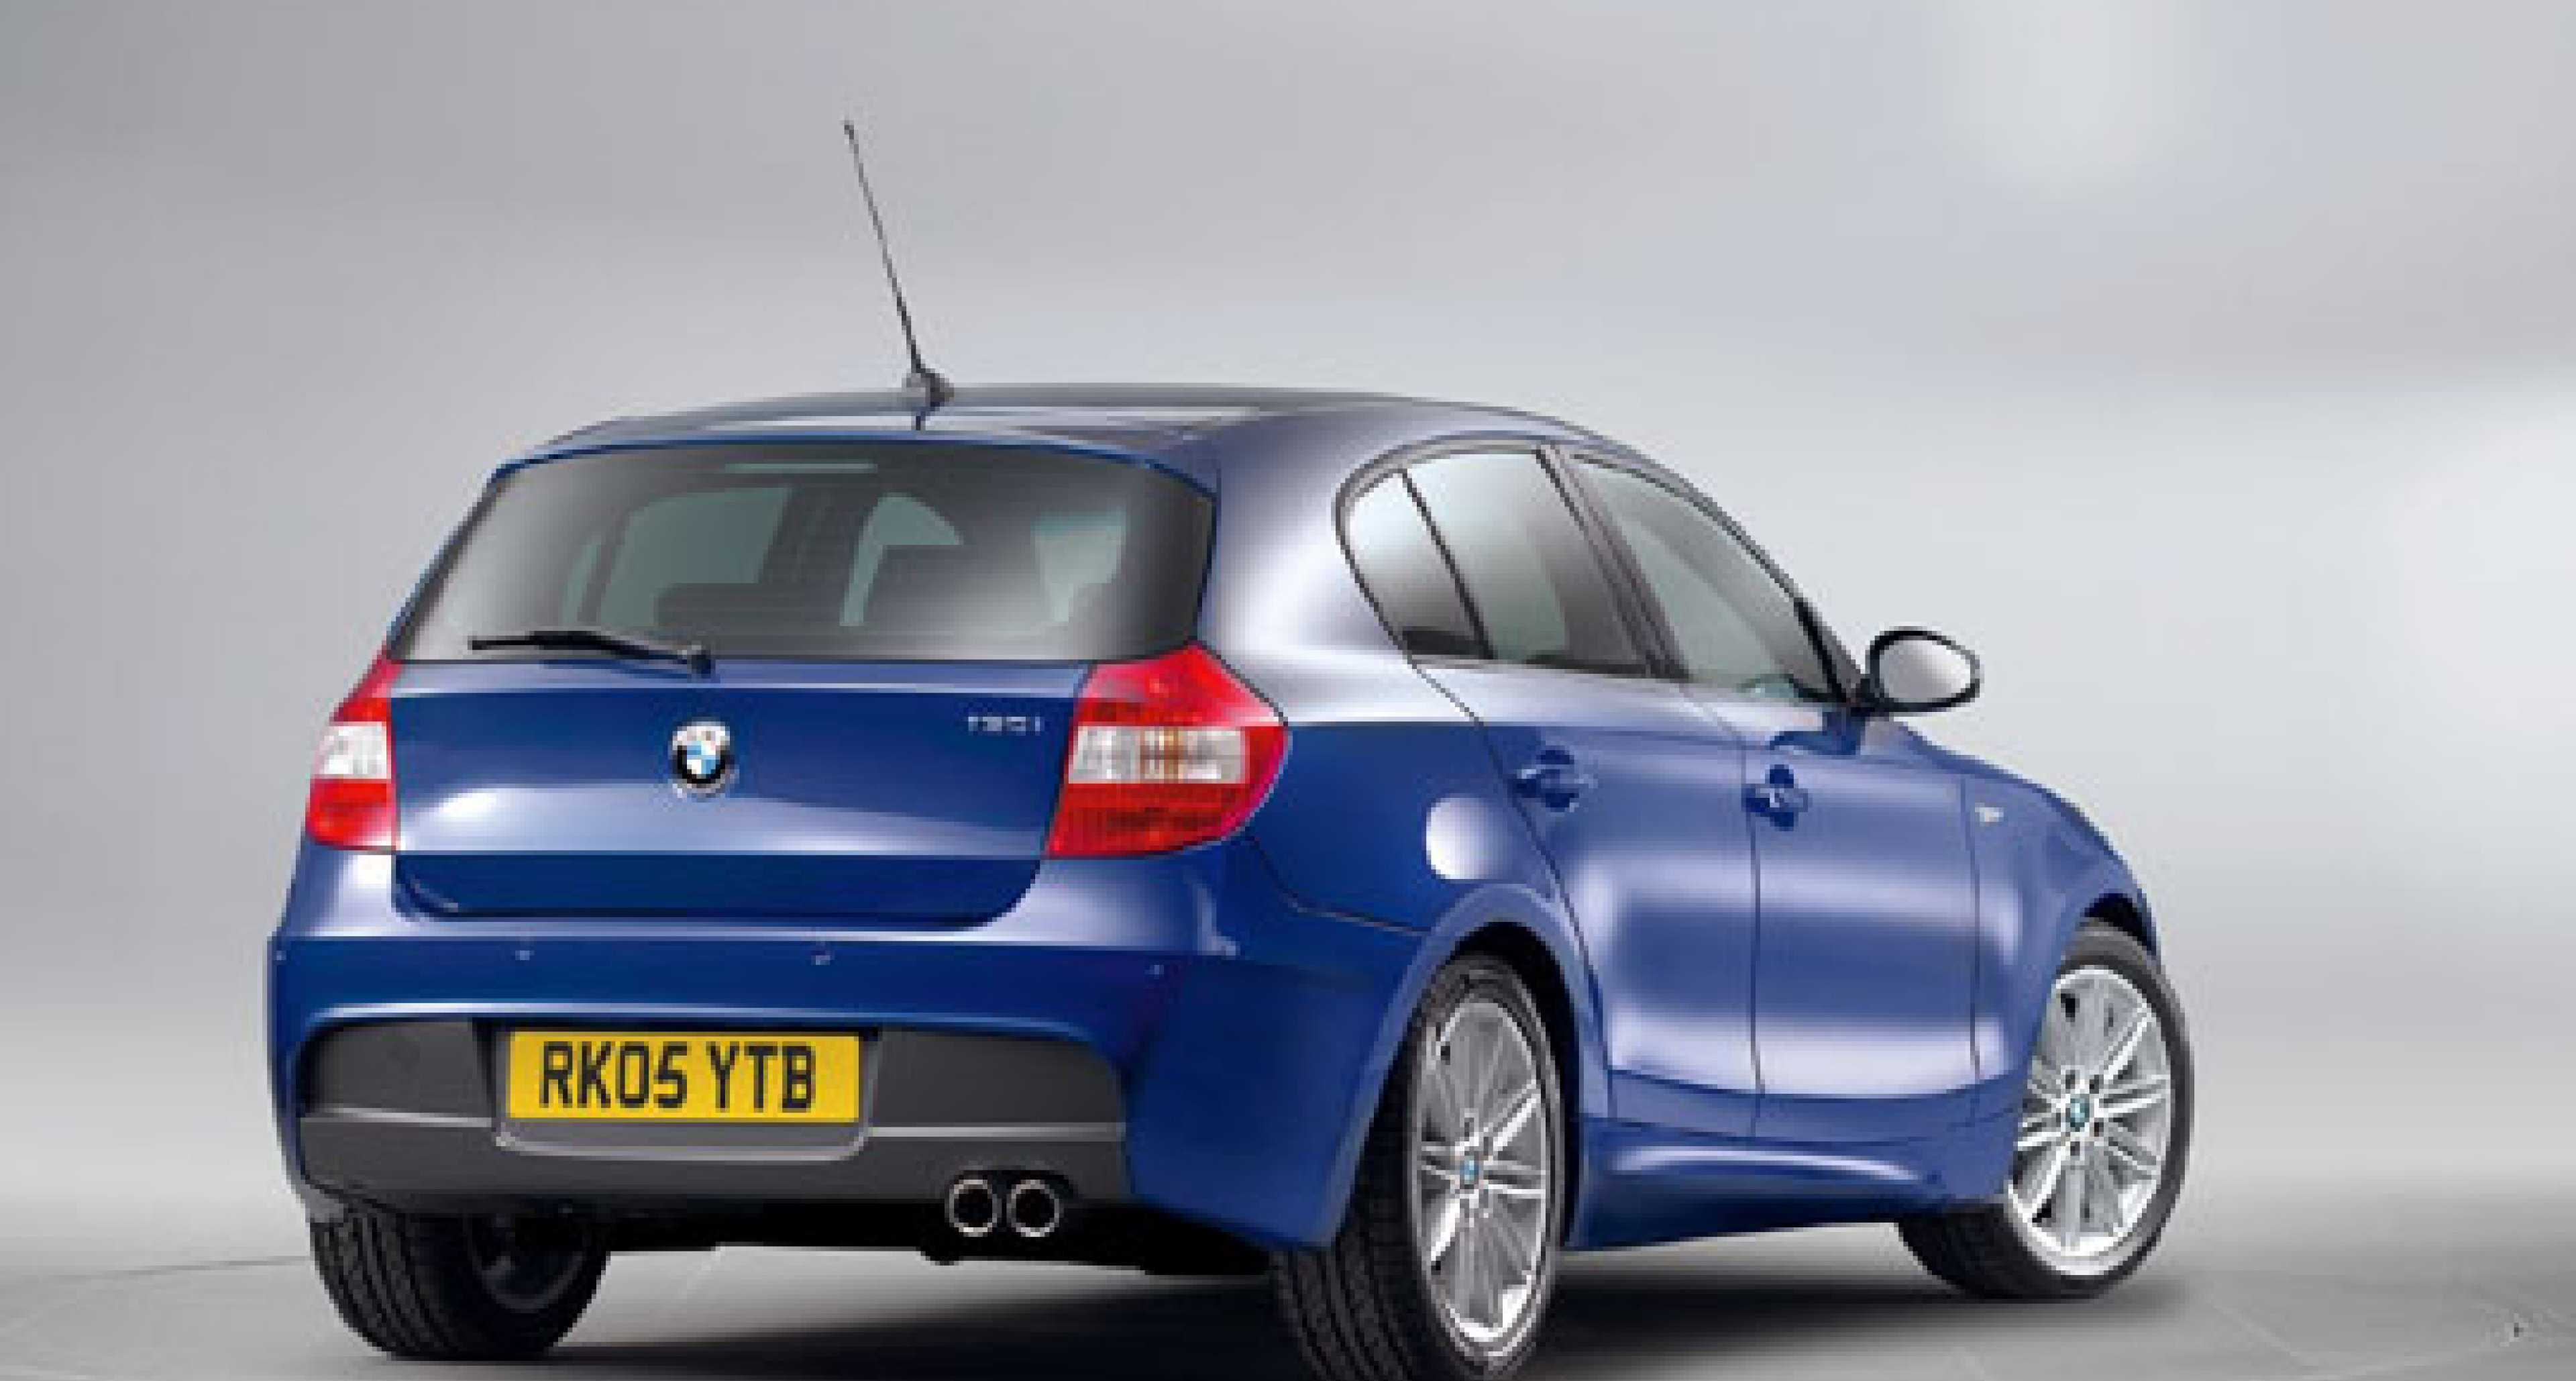 The new BMW 130i and M Sport